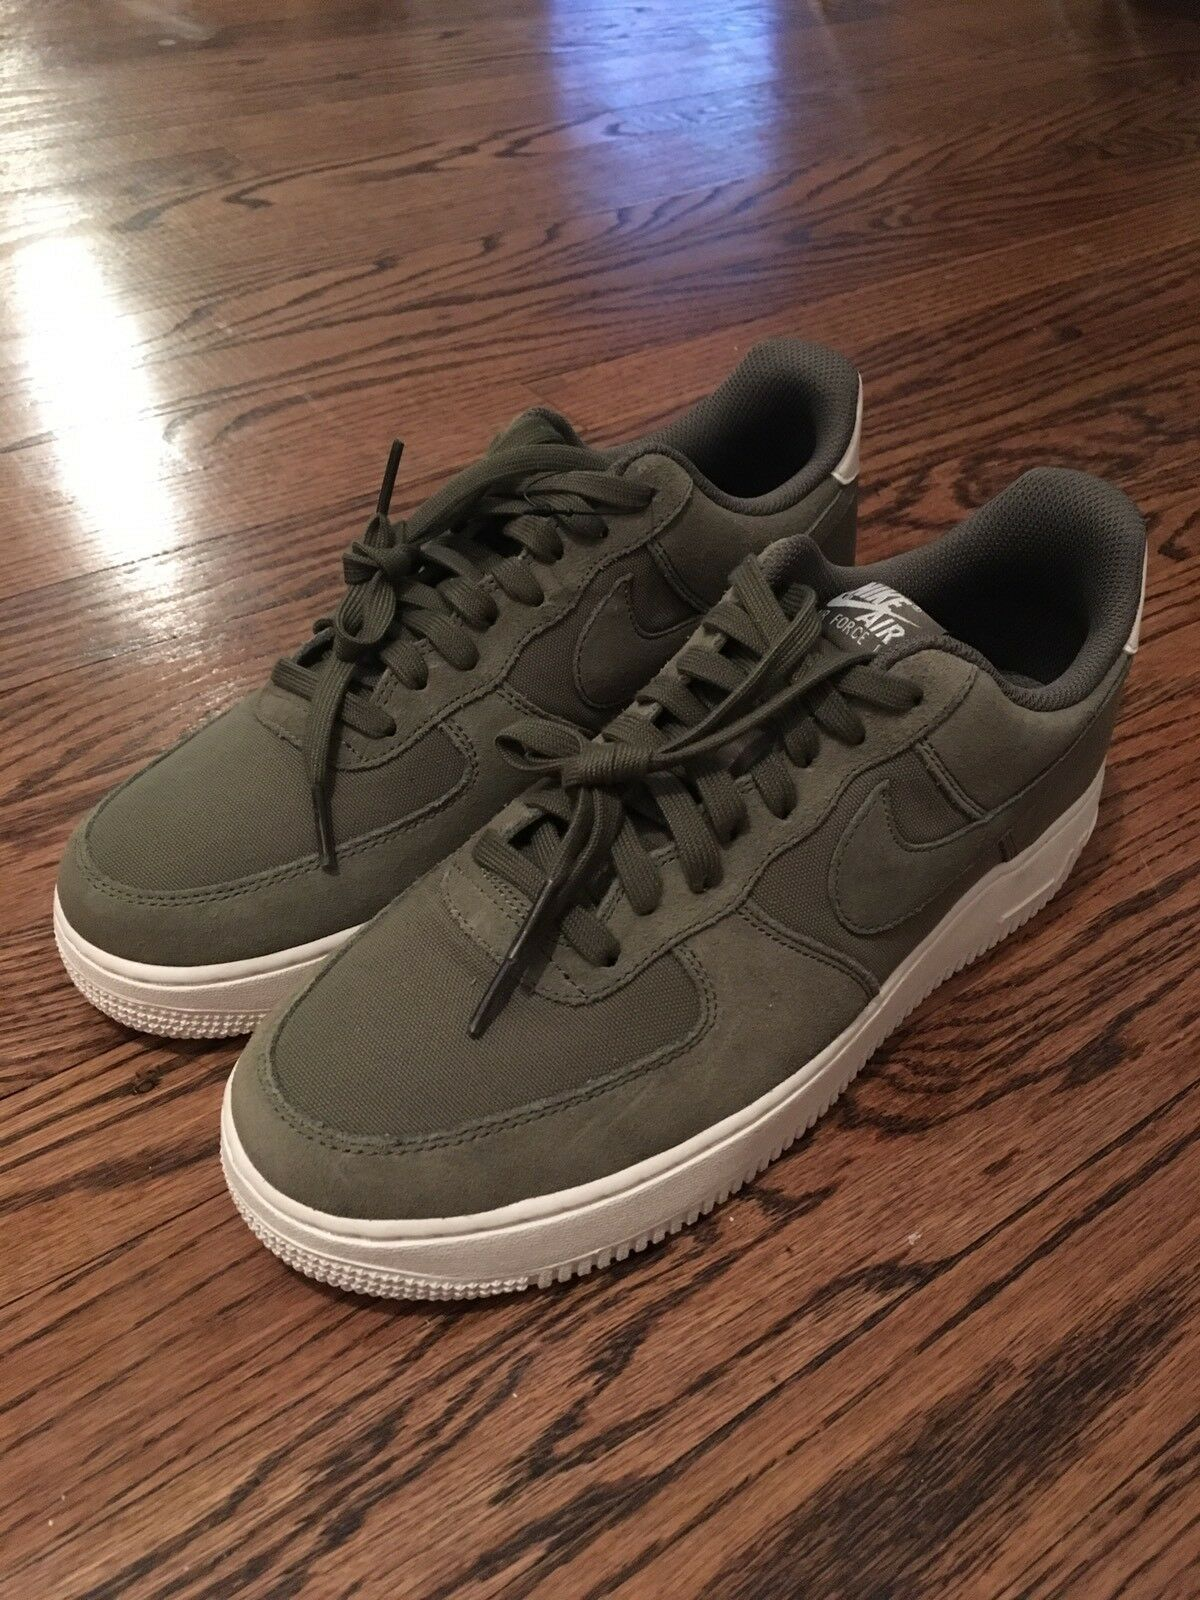 Nike Air Force 1 '07 Suede Medium Olive Sz 9 AO3835-200